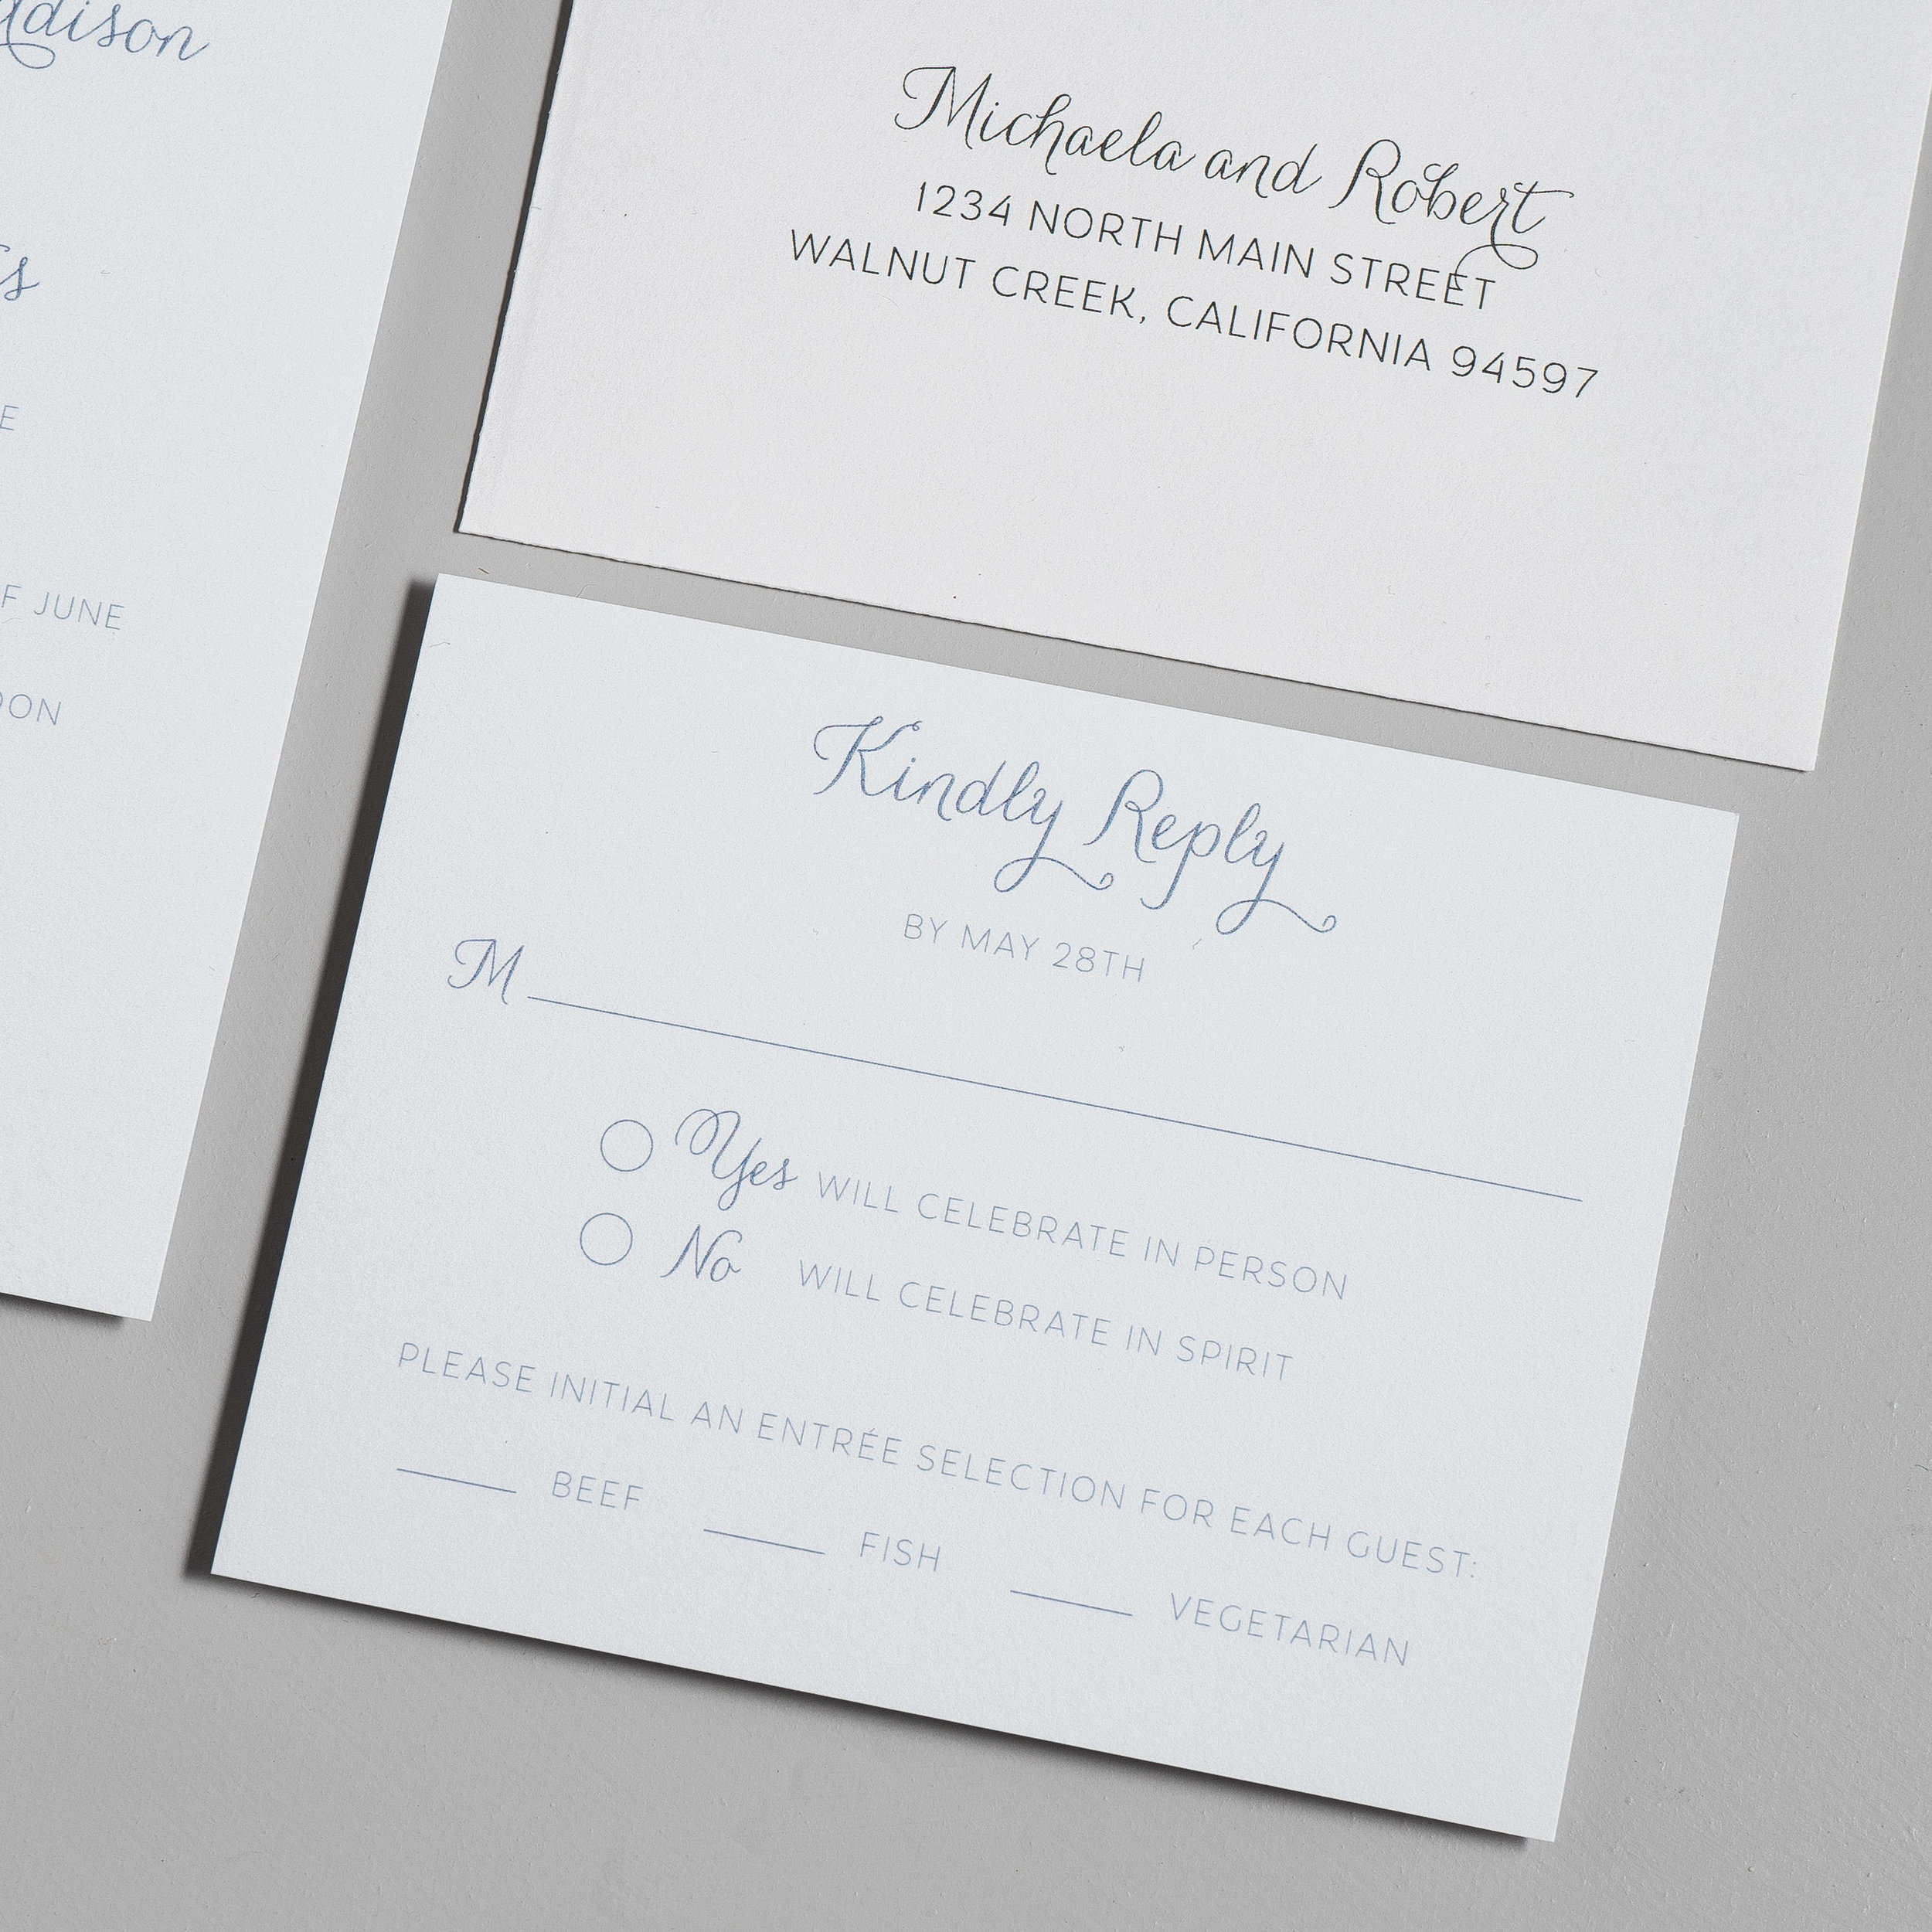 Dusty Blue Elegance V2 Wedding Invitations by Just Jurf-4a.jpg